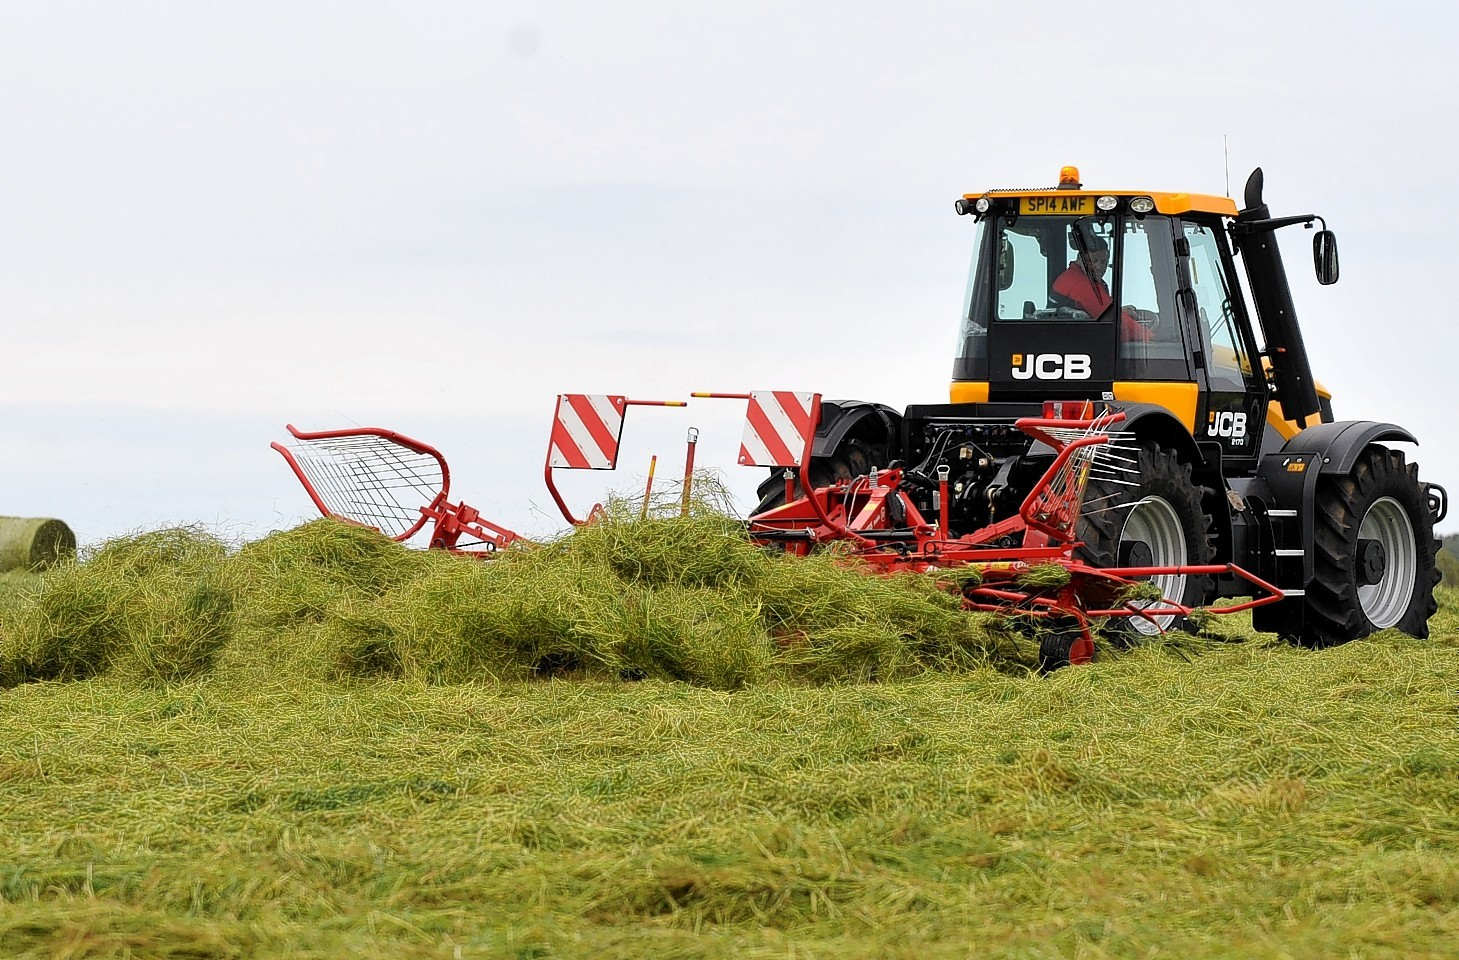 Grasstech at Plewlands Farm, Duffus. Lots of machinery on show.